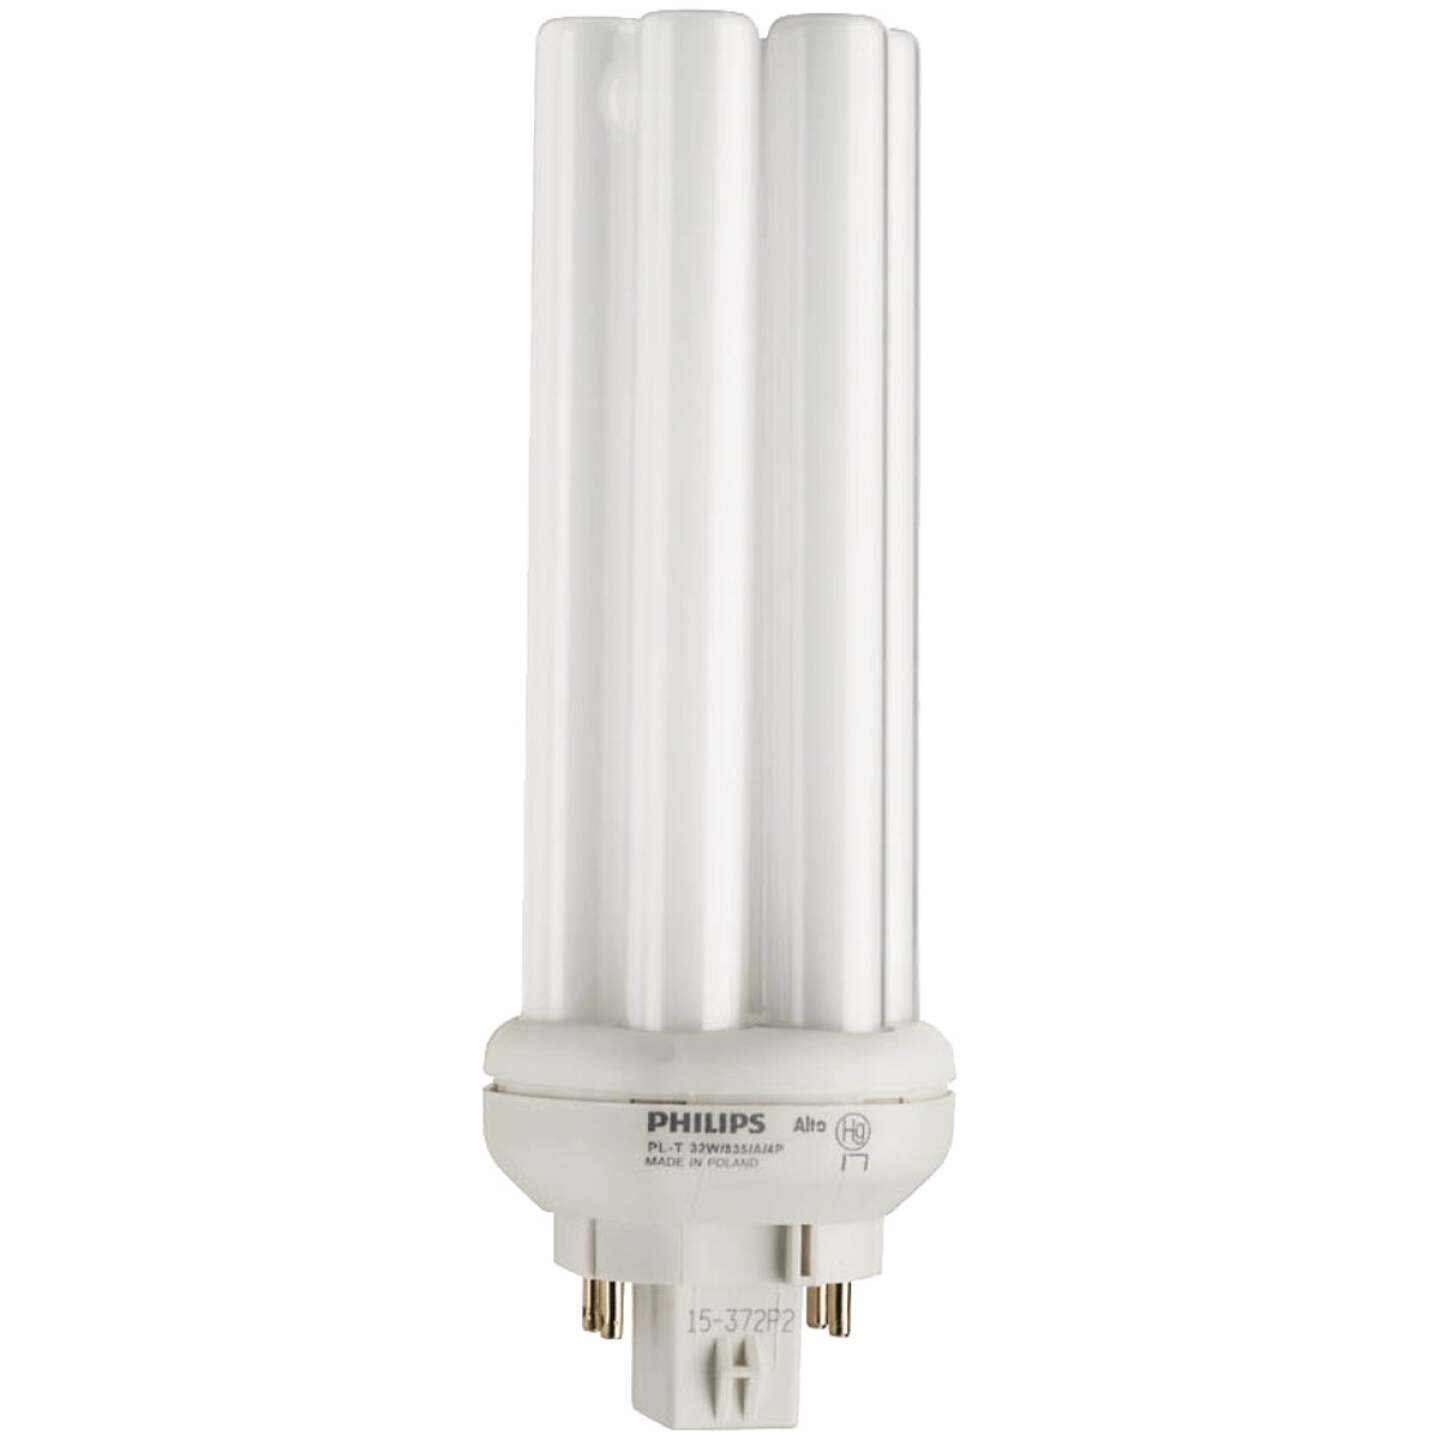 Philips 150W Equivalent Cool White GX24Q-3 Base PL-T CFL Light Bulb Image 1